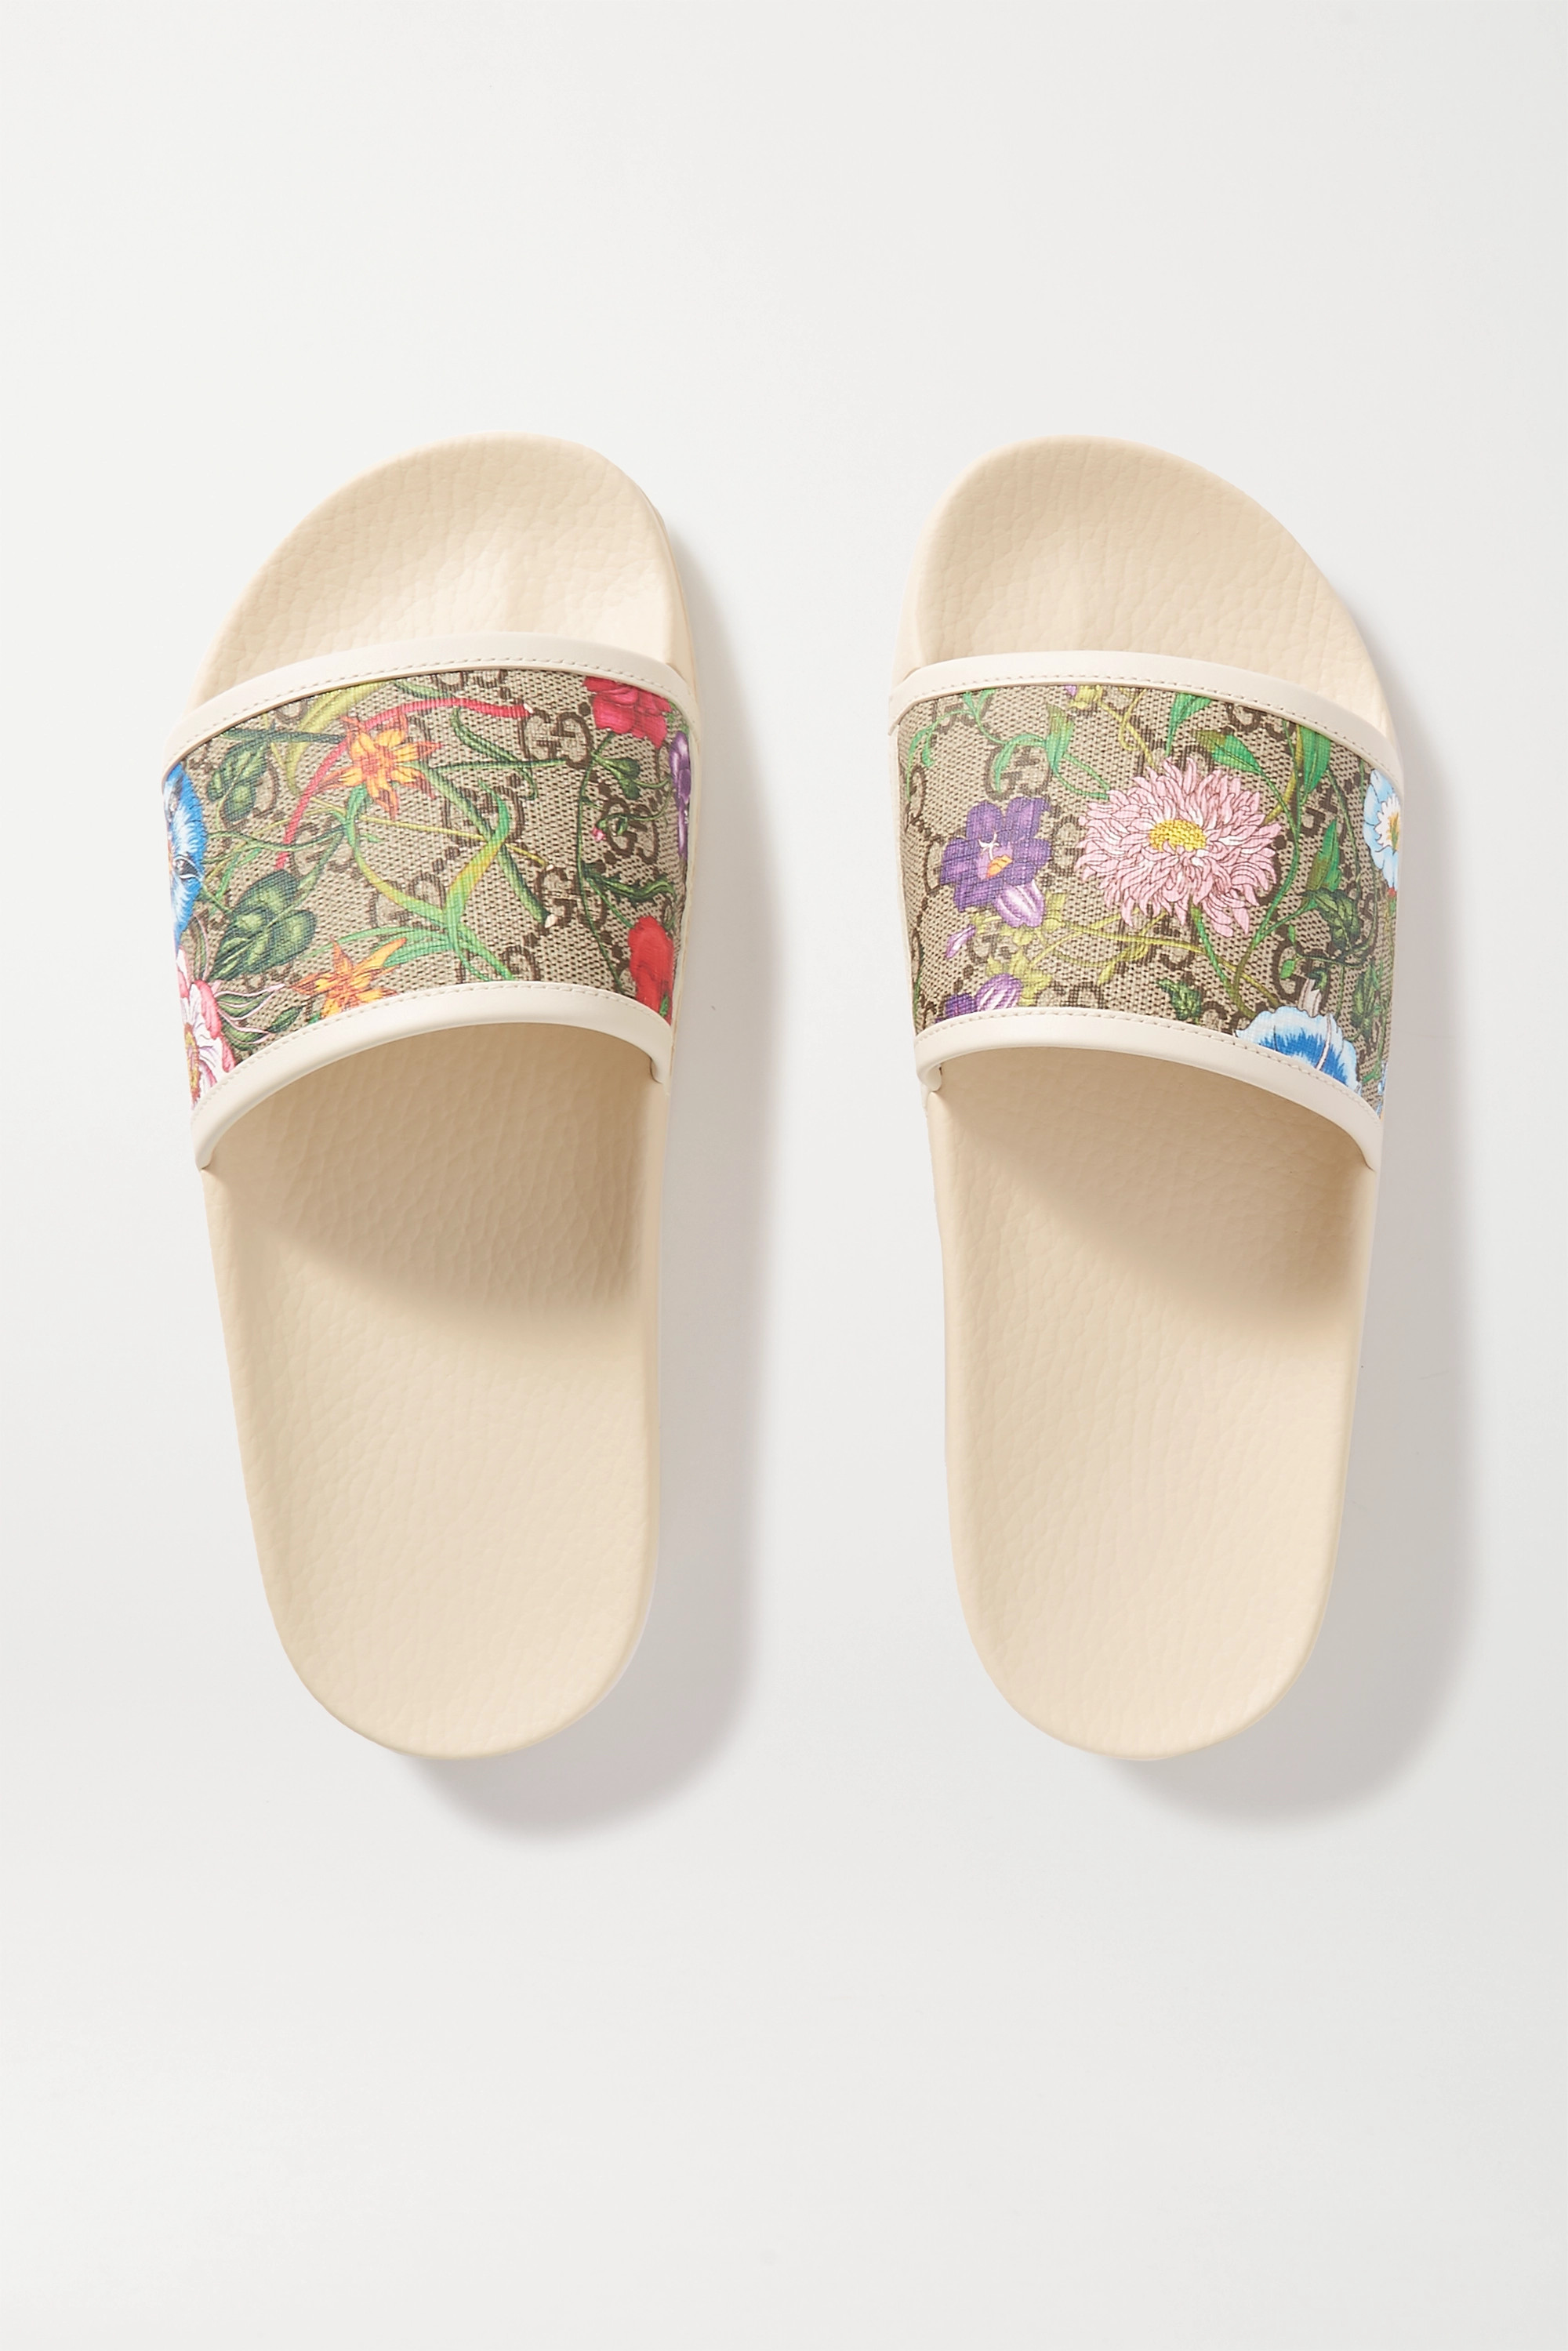 Gucci Pursuit GG leather-trimmed printed rubber slides